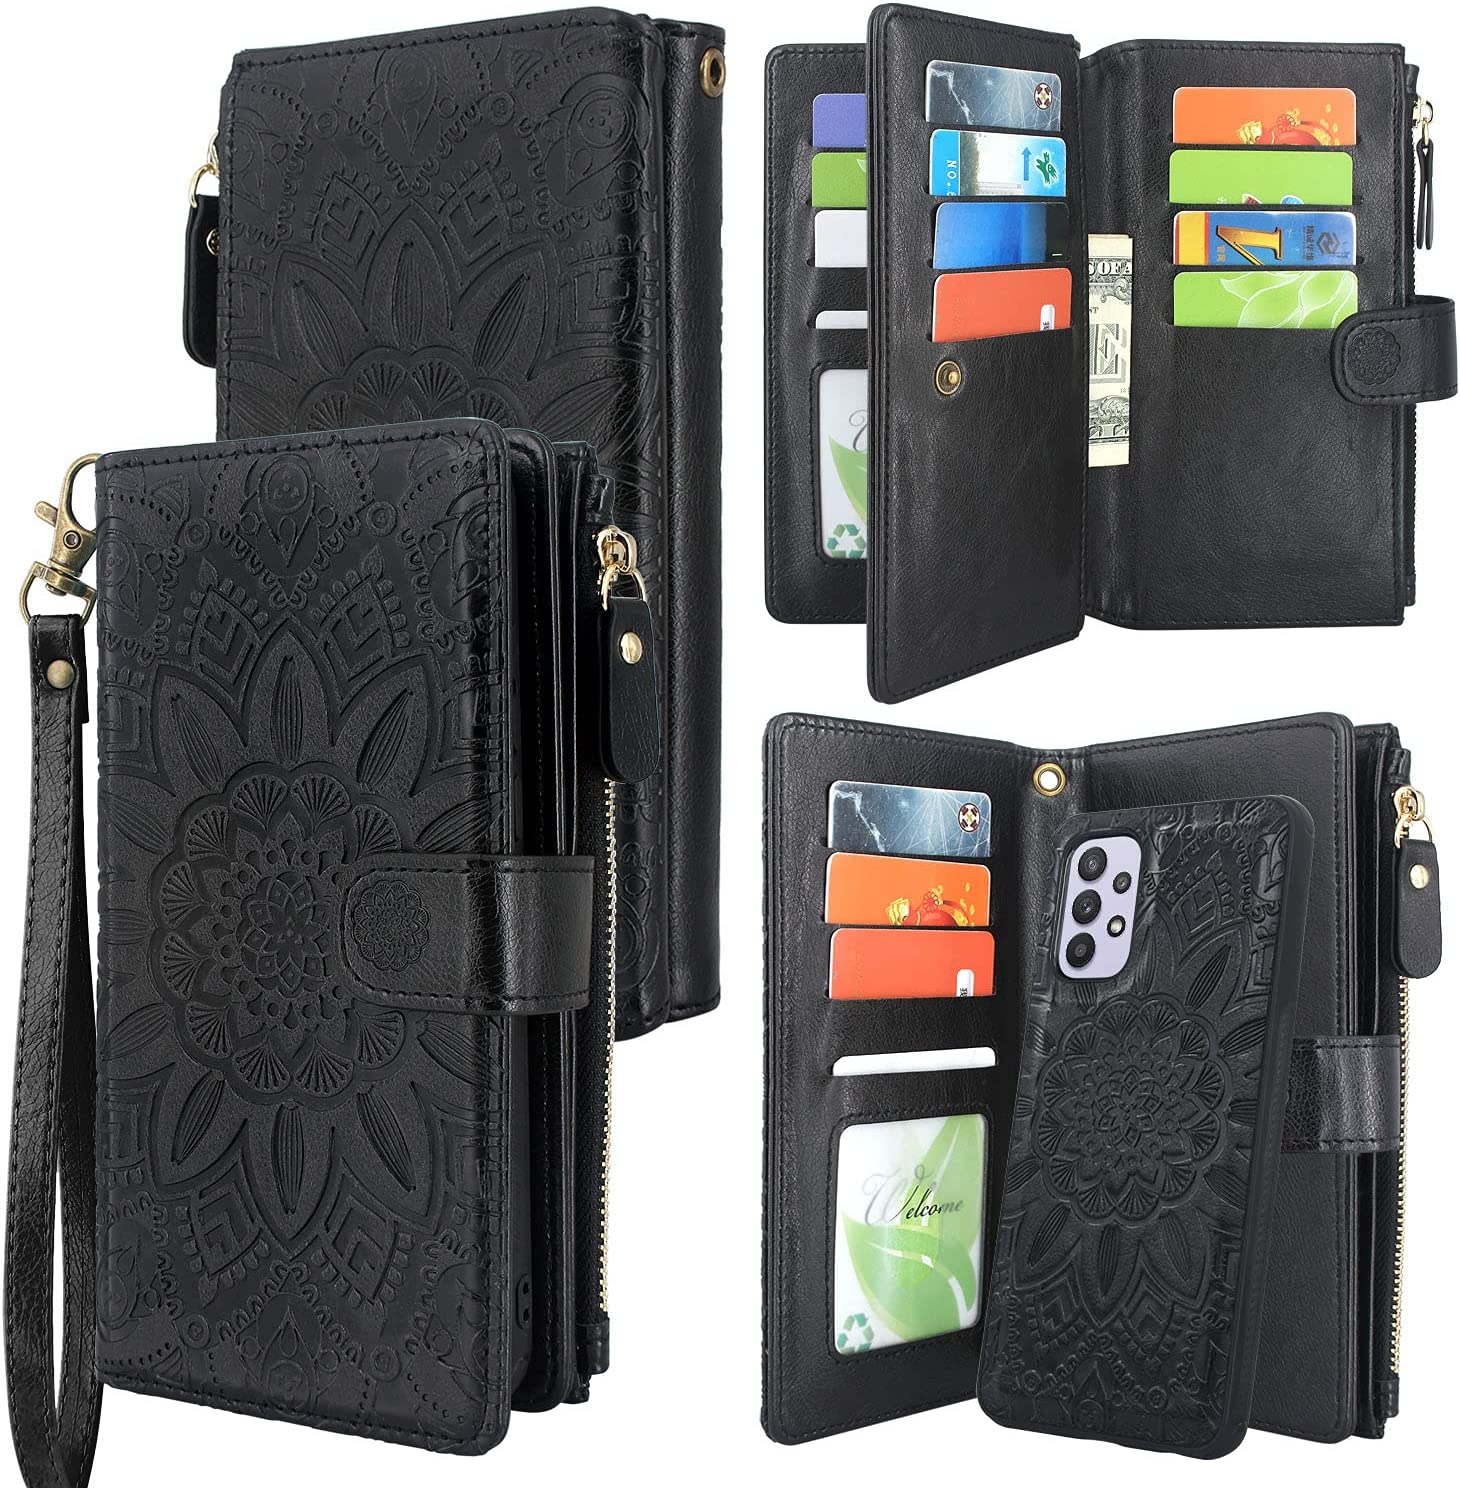 Harryshell Detachable Magnetic Zipper Wallet Leather Case with Cash Coin Pocket 12 Card Slots Holder Wrist Strap Lanyard for Samsung Galaxy A32 5G (2021) Flower (Black)